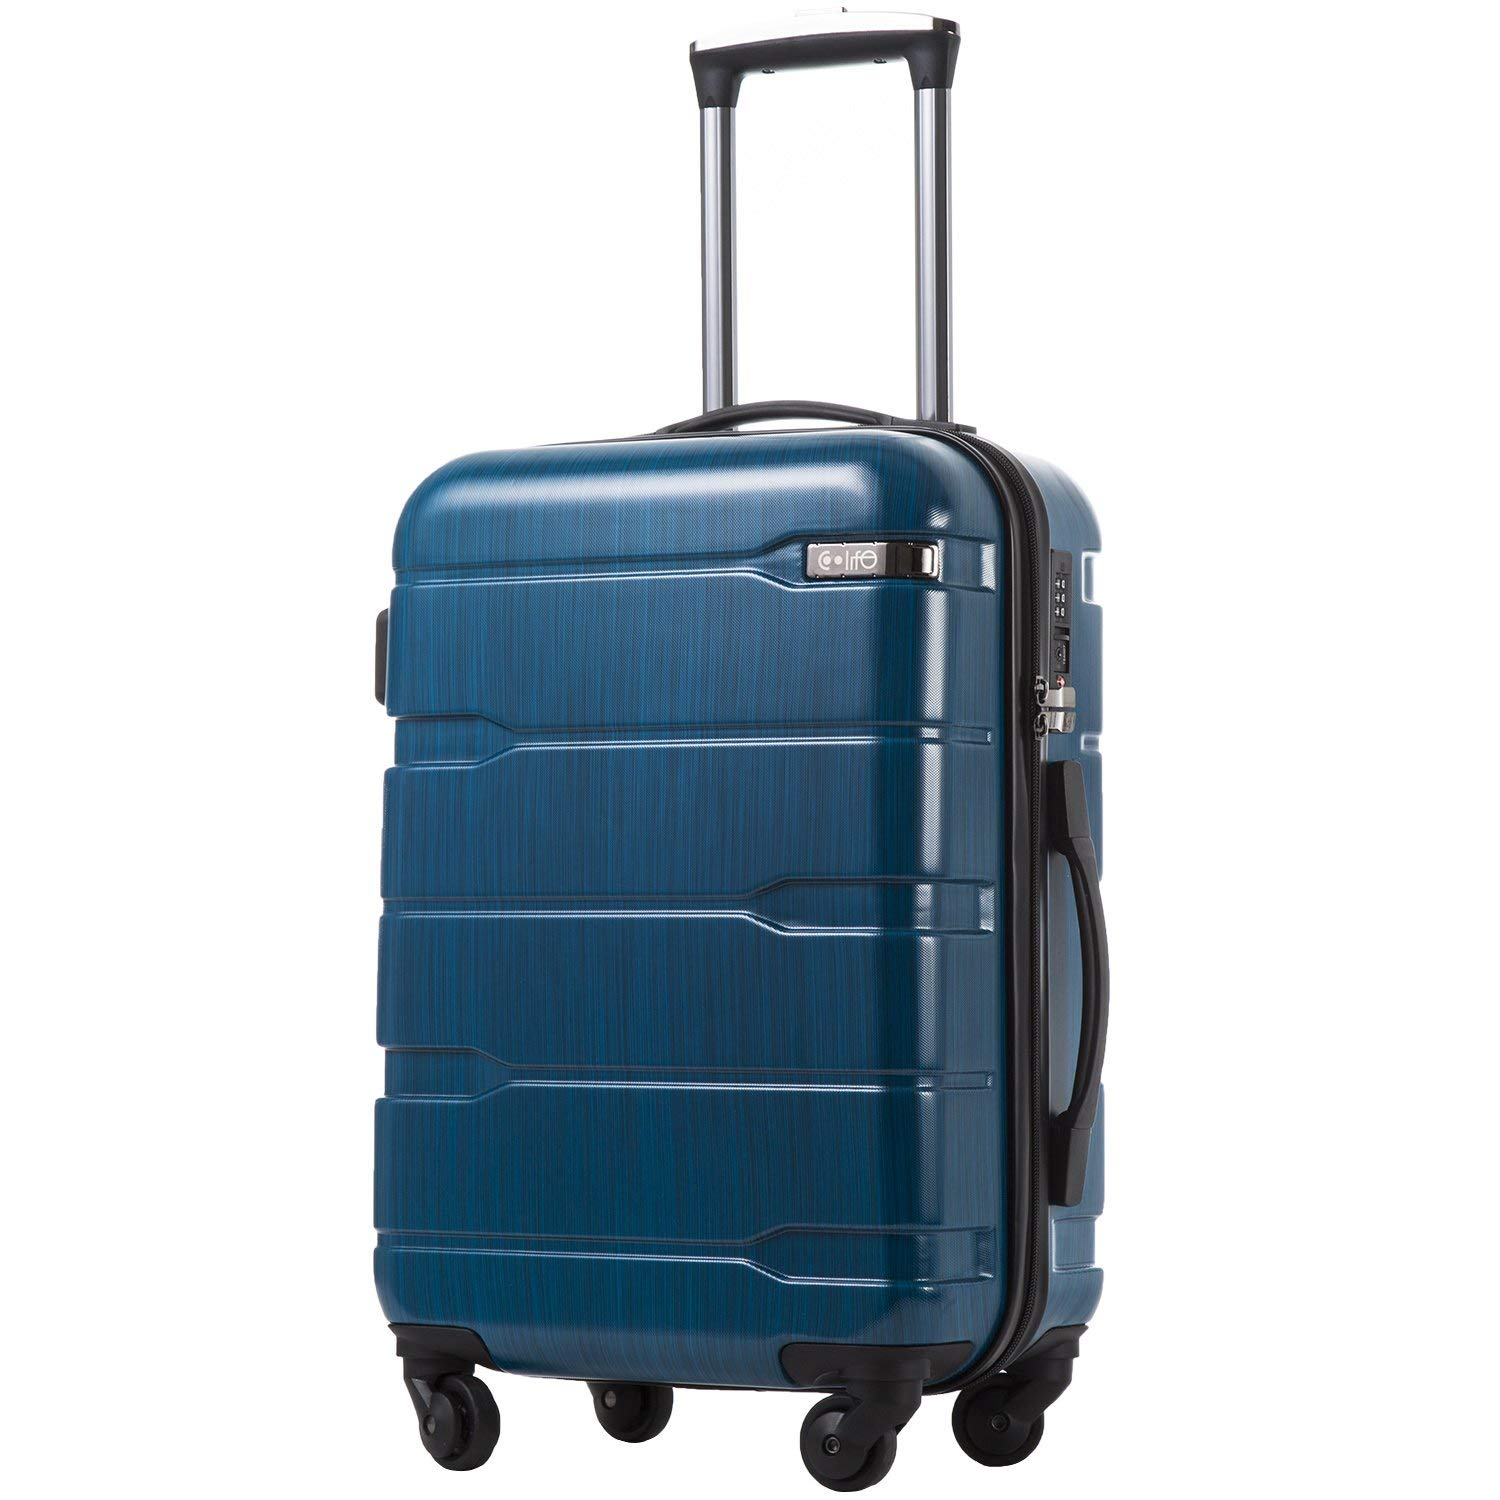 COOLIFE Expandable Spinner Carry-On Luggage, 20-Inch